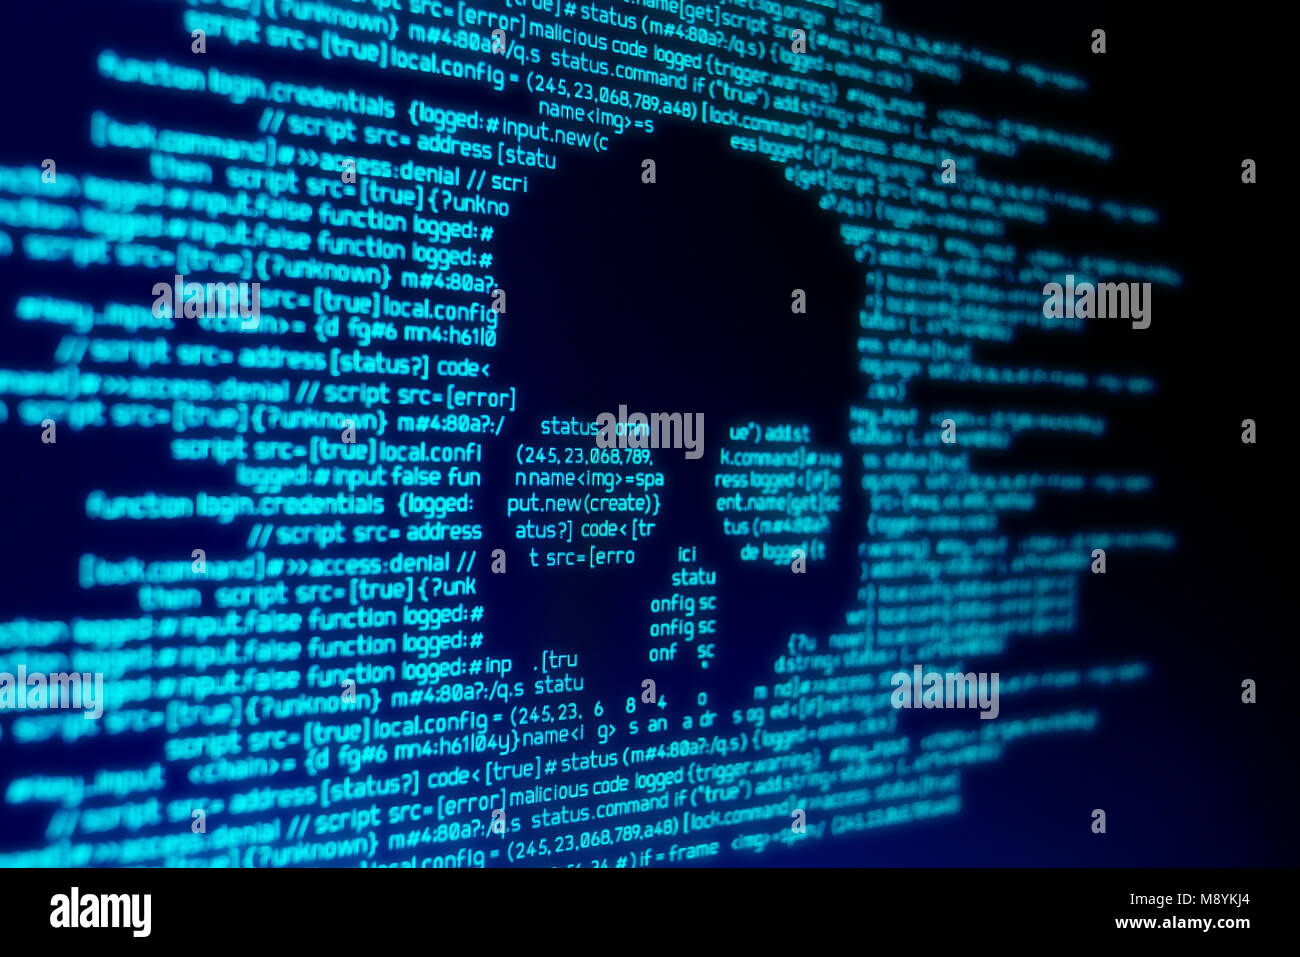 Computer code on a screen with a skull representing a computer virus / malware attack. - Stock Image